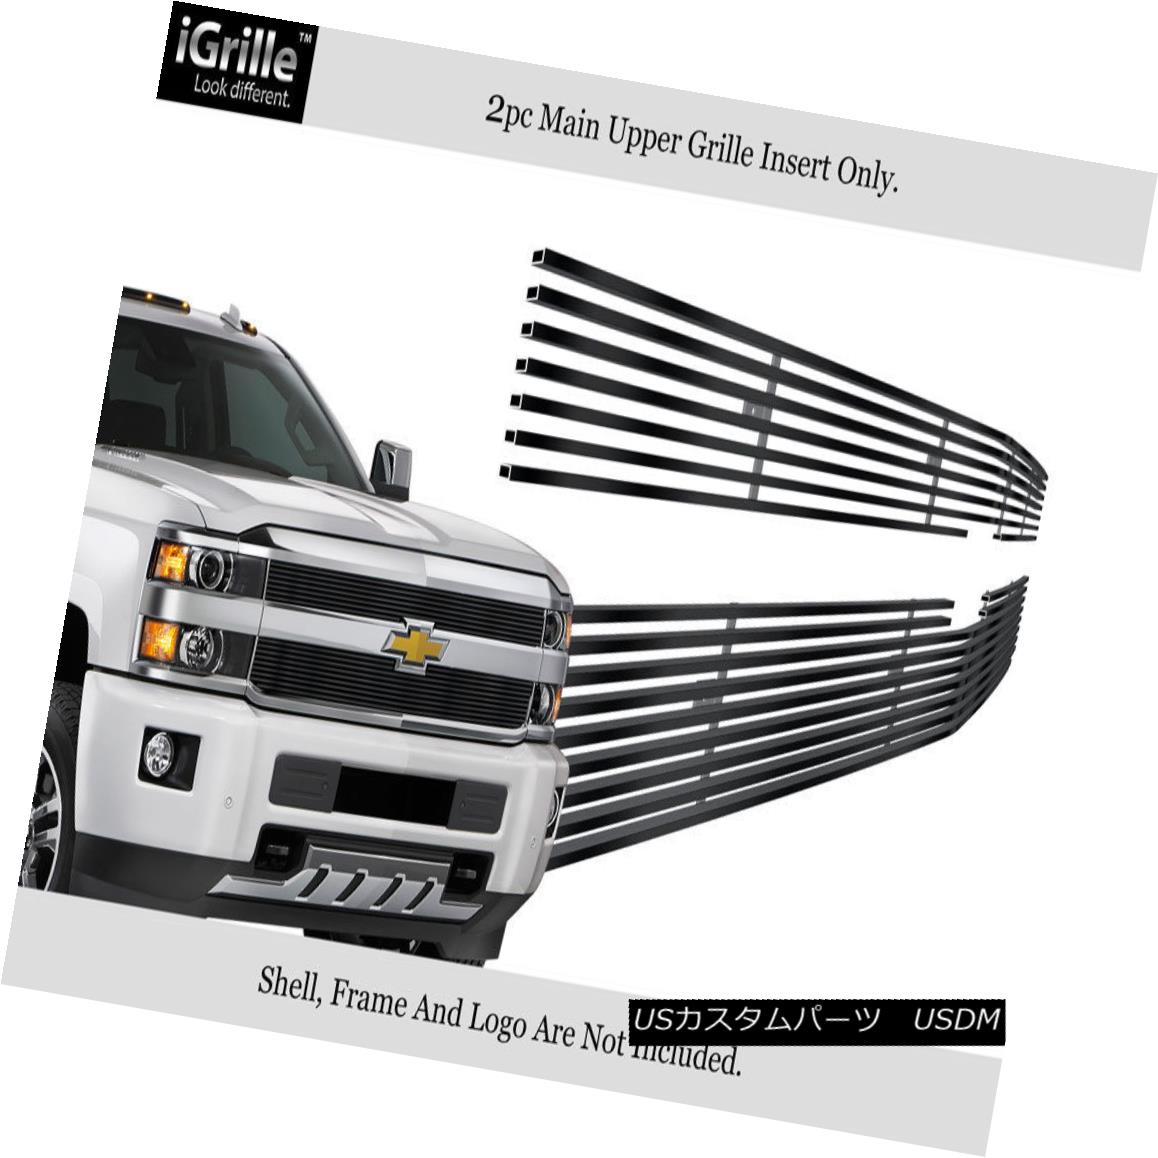 グリル For 2015-2018 Chevy Silverado 2500HD/3500 HD Stainless Black Billet Grille 2015-2018 Chevy Silverado 2500HD / 3500 HDステンレスブラックビレットグリル